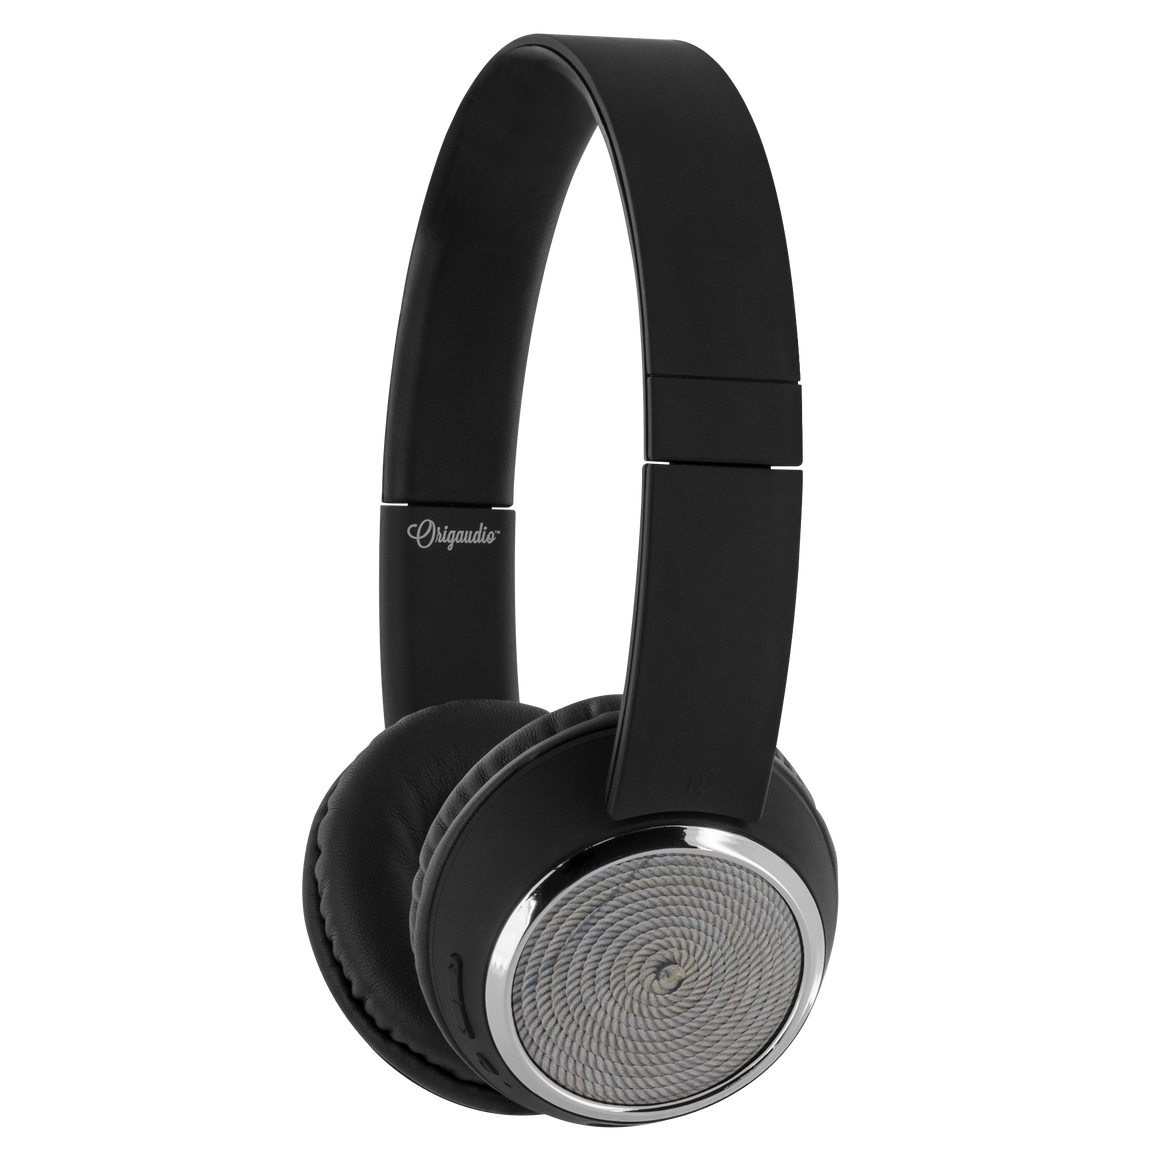 Flemish Coil Wireless Headphones